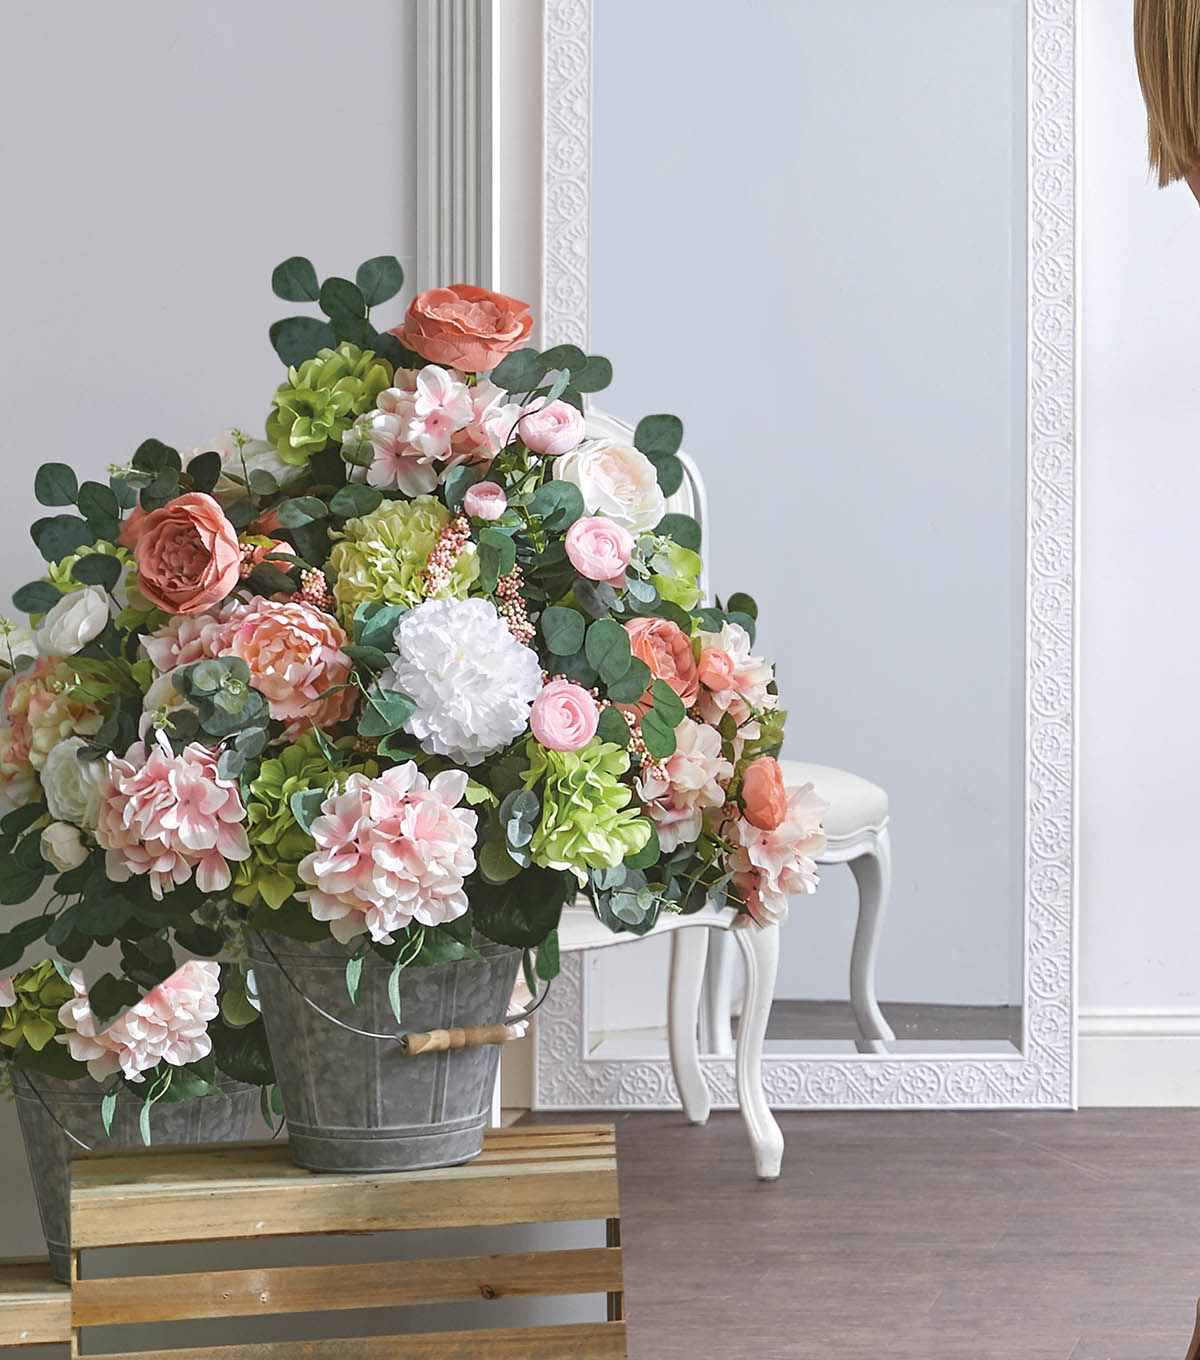 How To Make Entryway Floral Arrangements